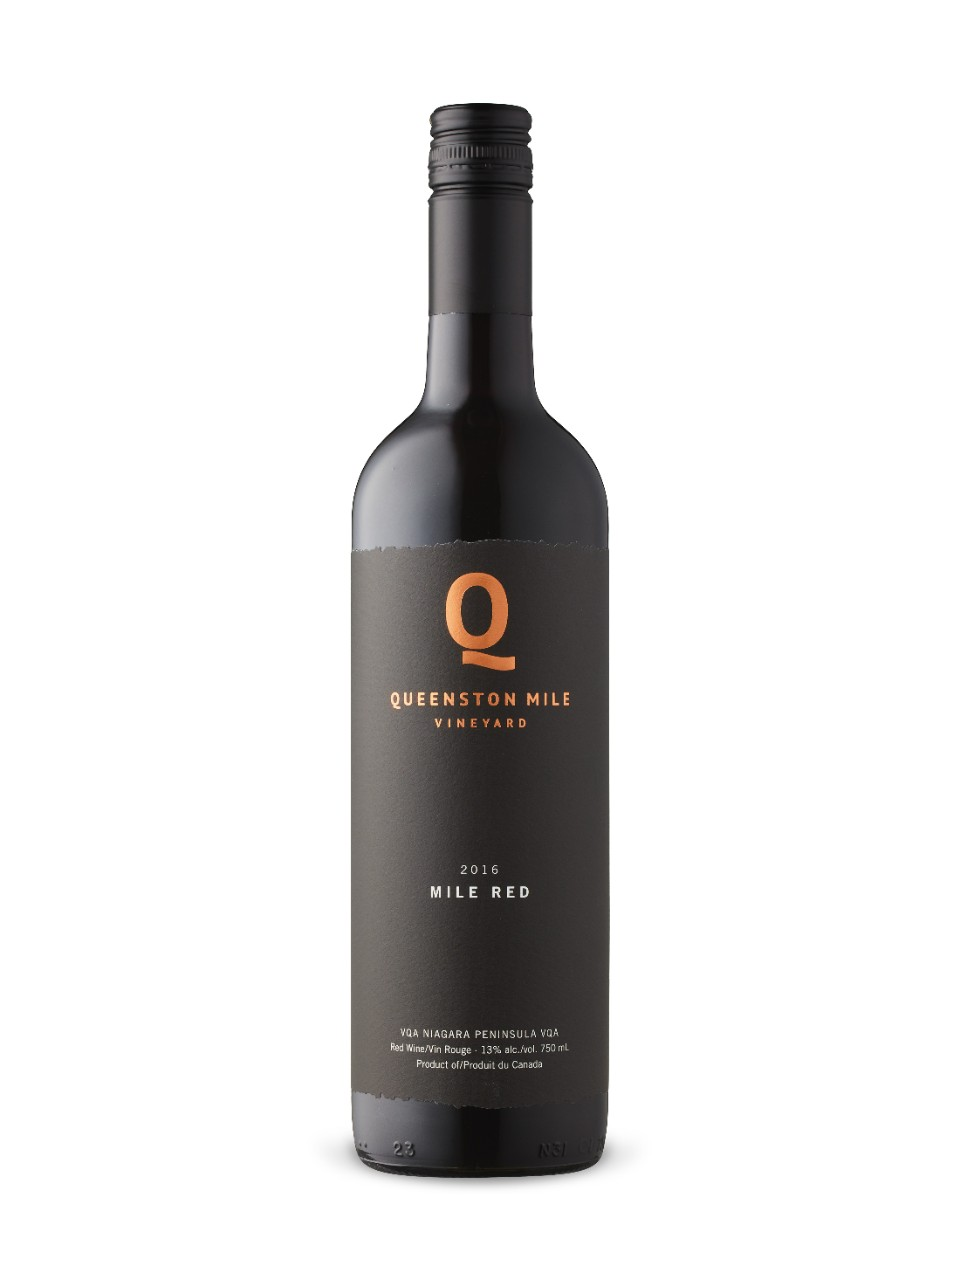 Queenston Mile Red 2016 from LCBO